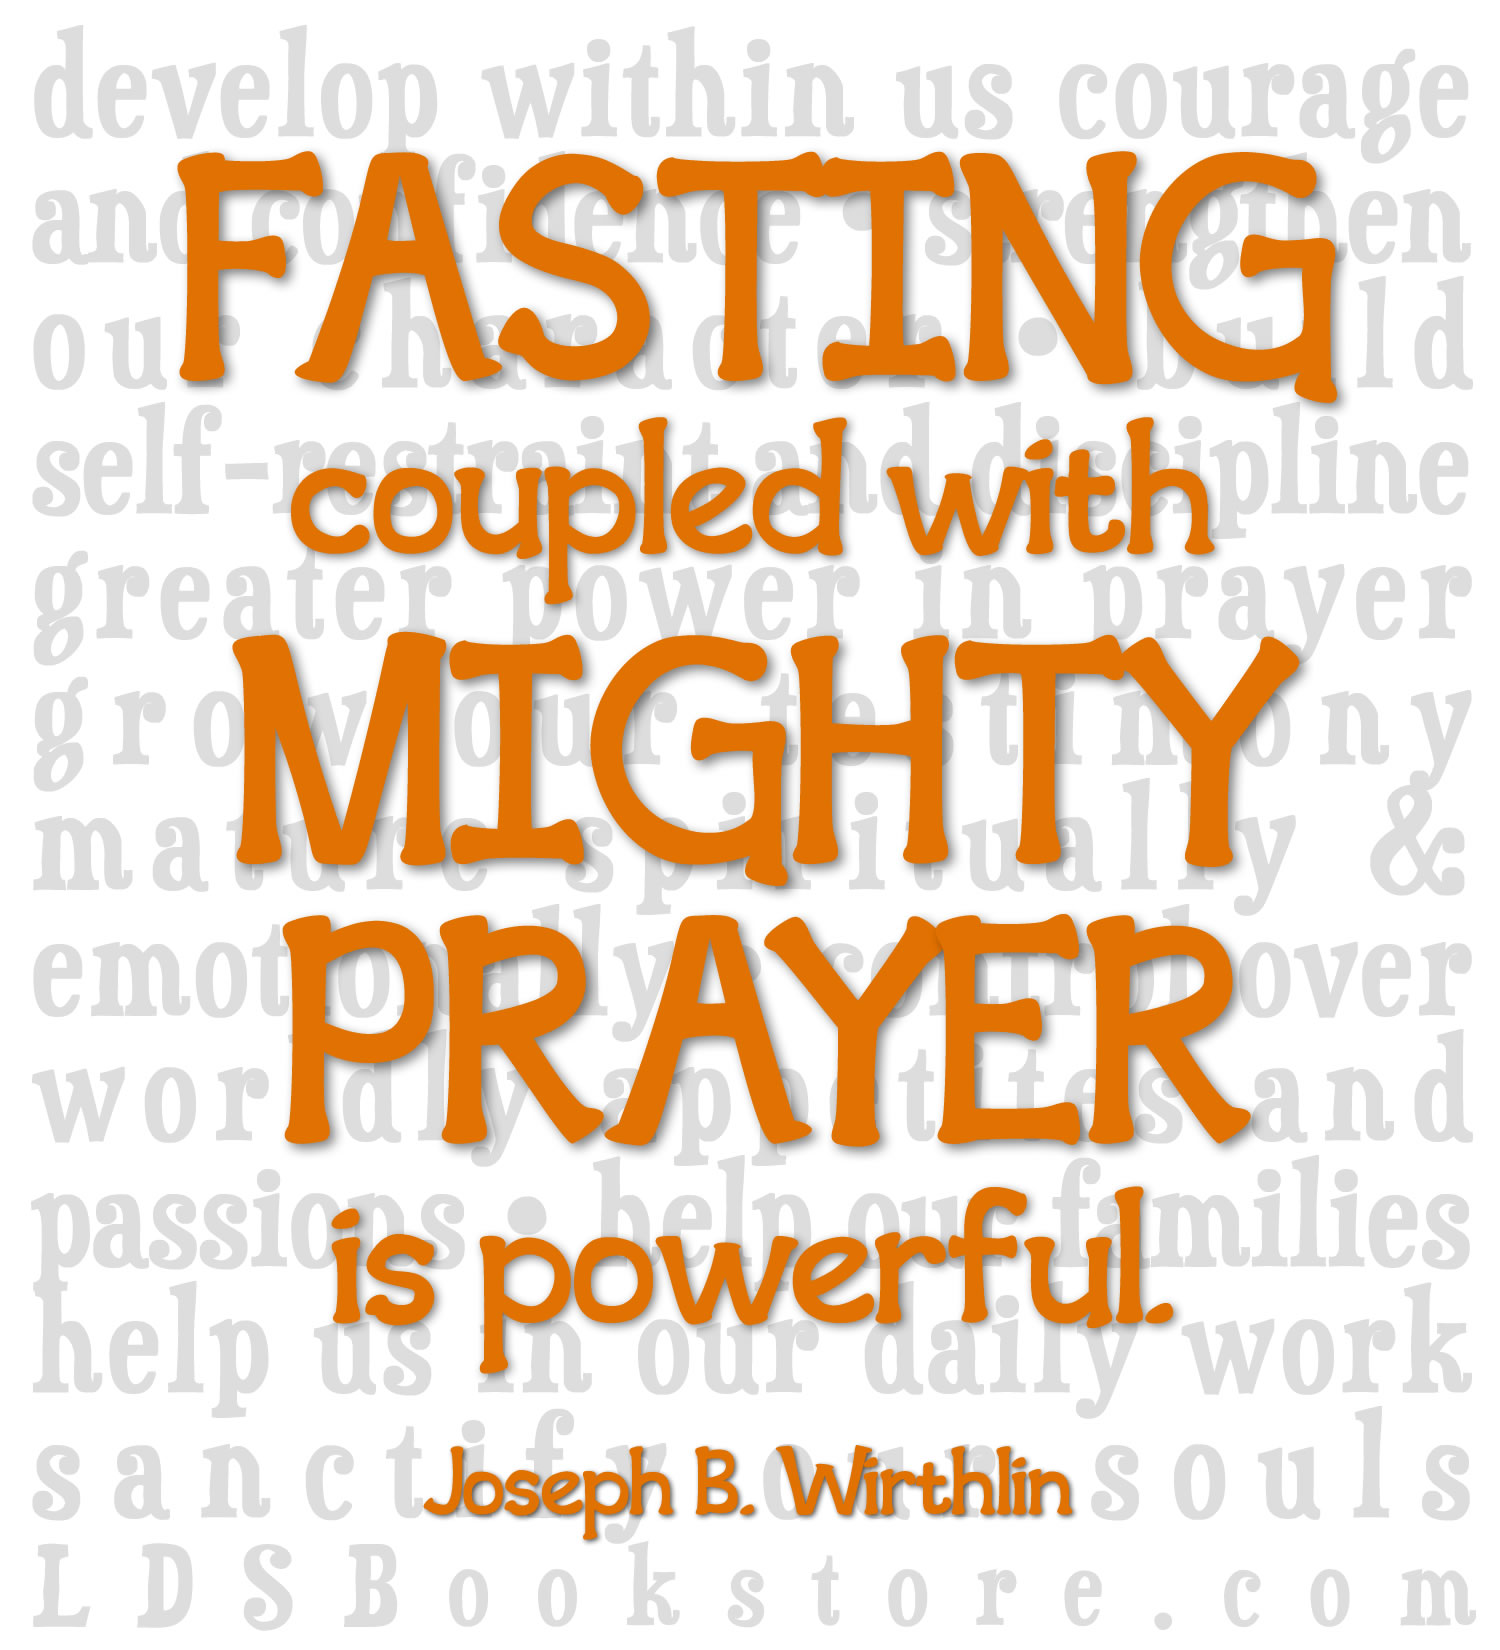 Fasting, coupled with mighty prayer, is powerful. It can fill our minds with the revelations of the Spirit